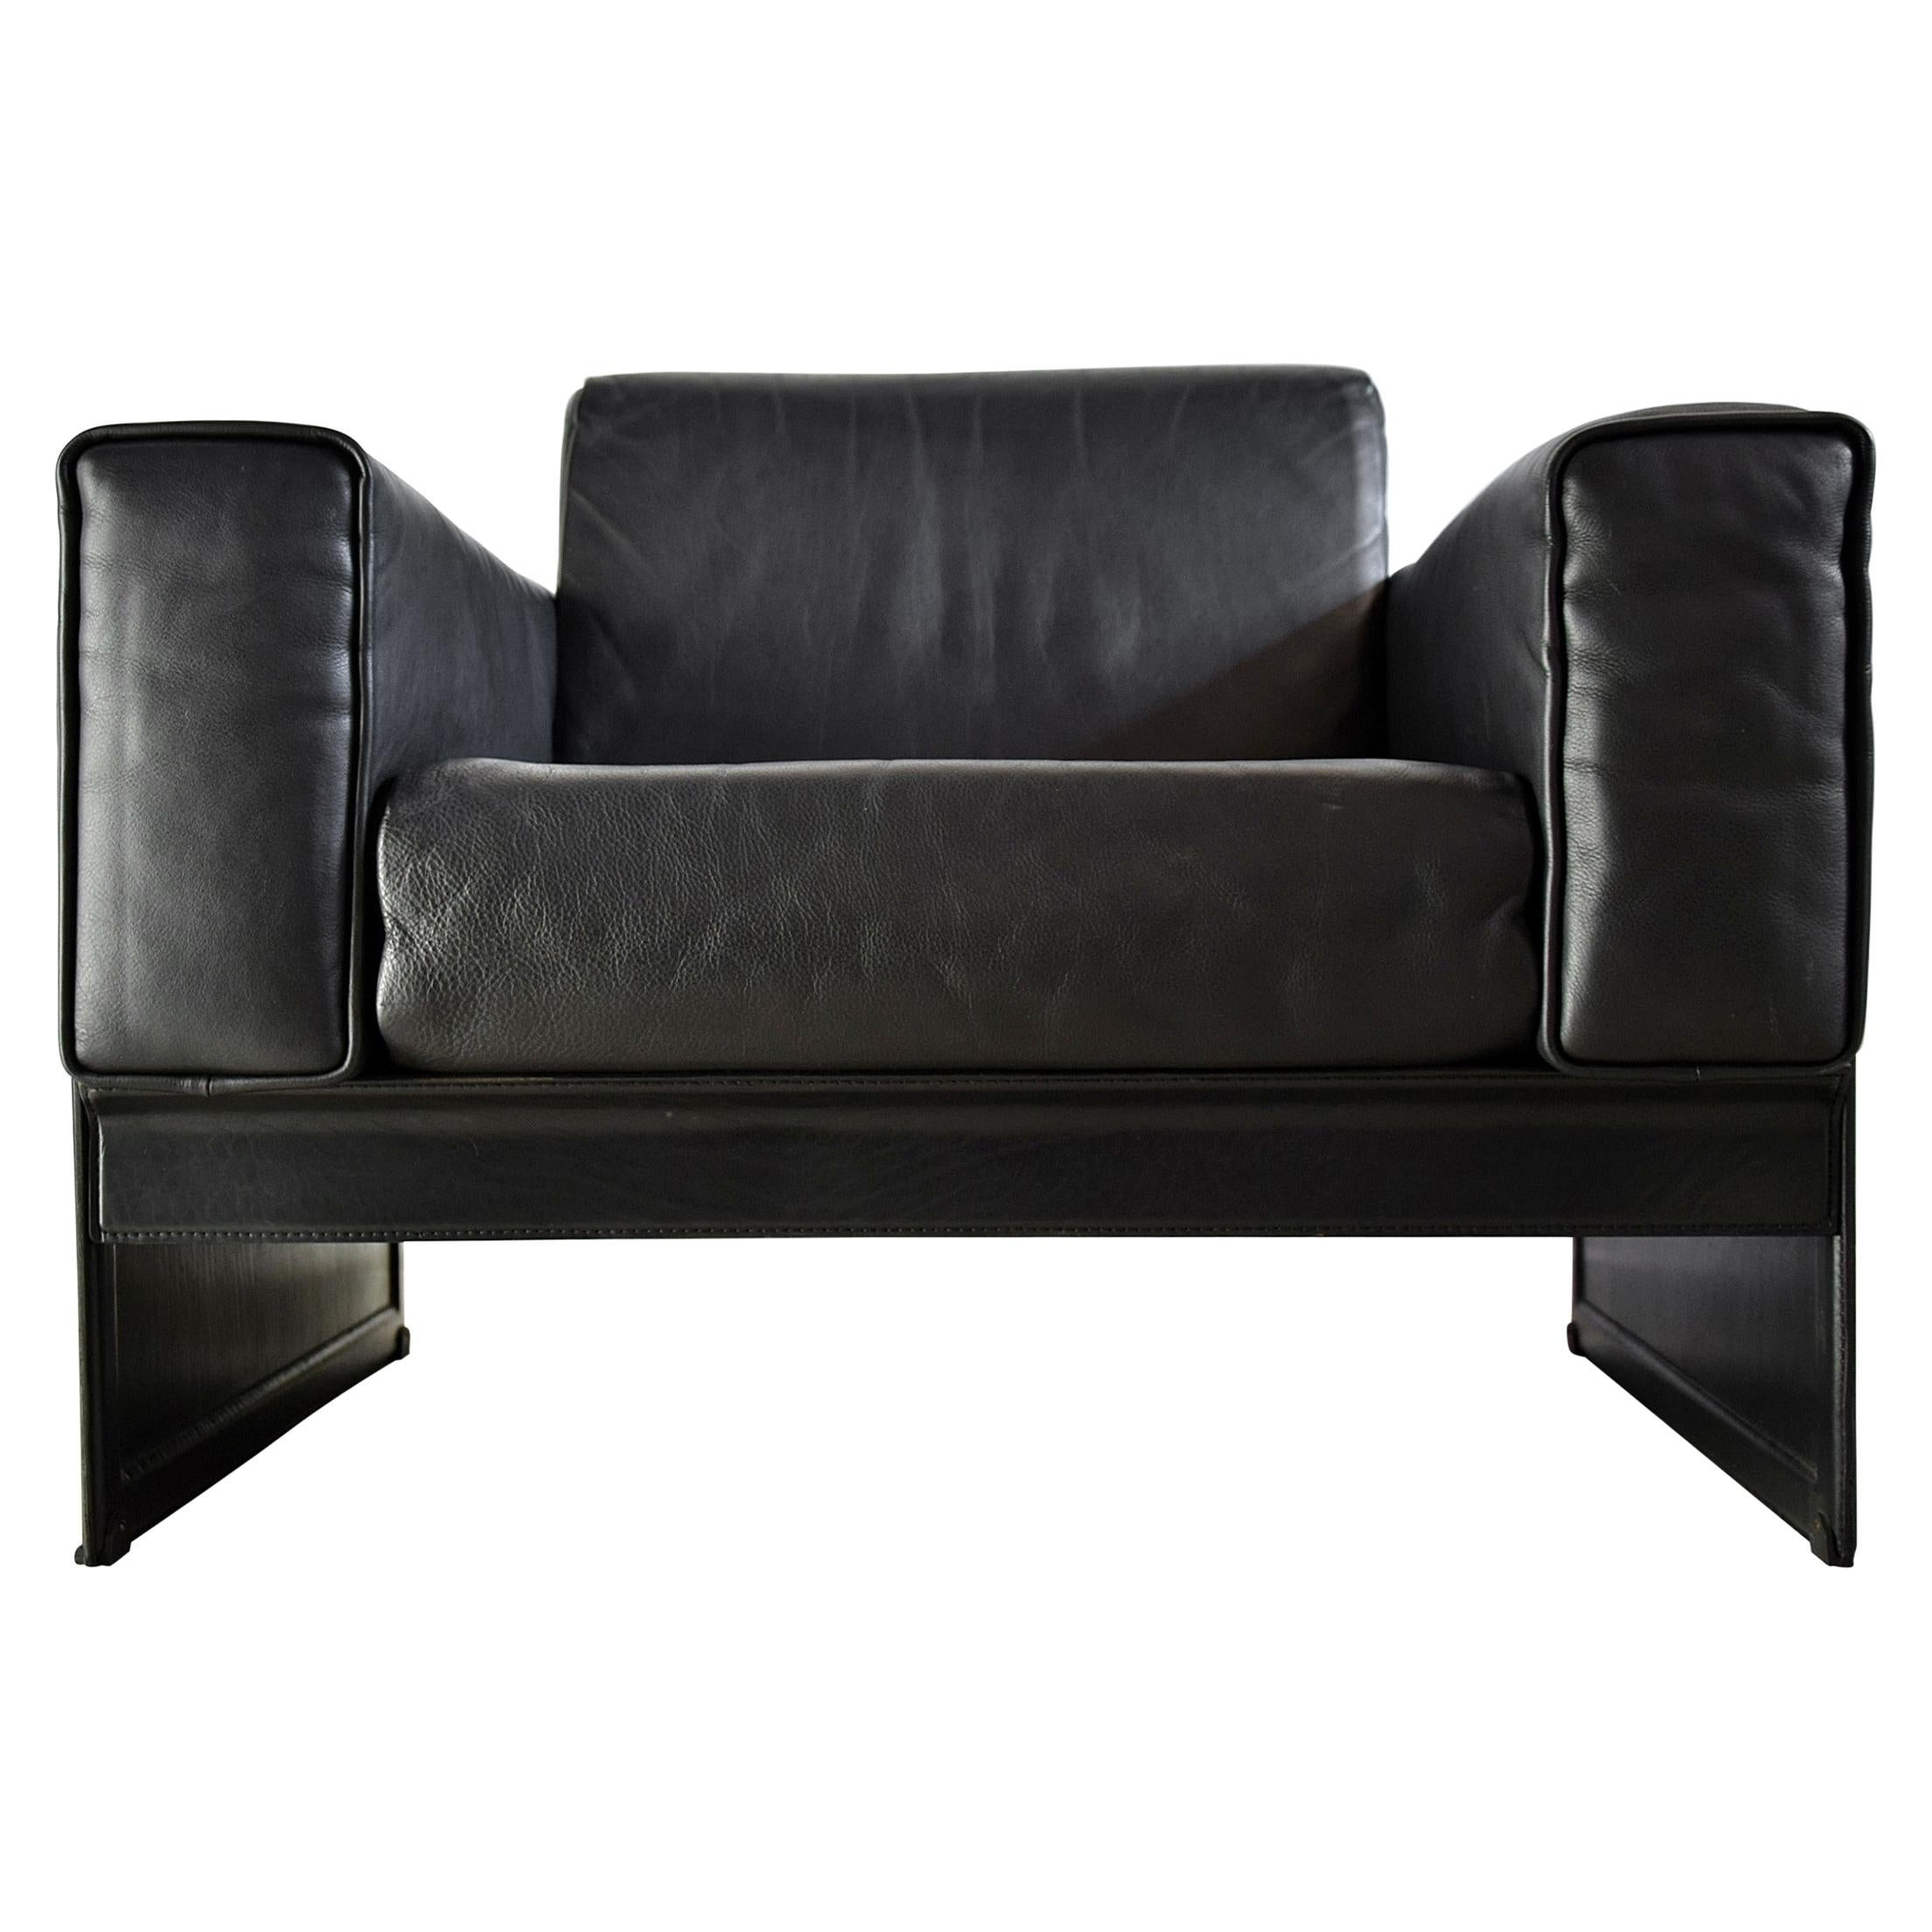 Pair of Korium Black Leather Lounge Chairs by Tito Agnoli for Matteo Grassi